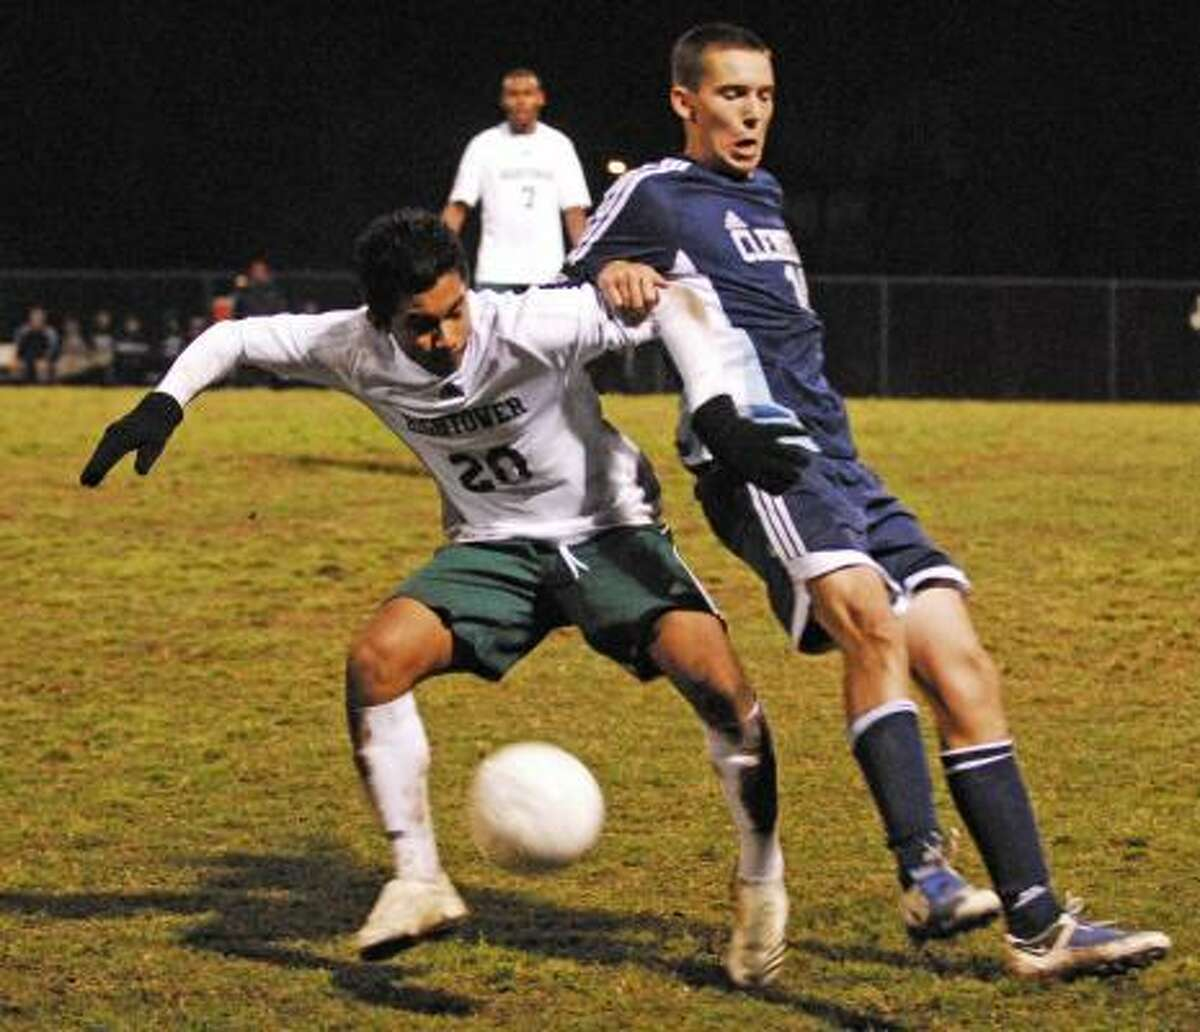 CLEMENTS 2, HIGHTOWER 0: Jorge Escobar, No. 20, of Hightower and William Morse, No. 14, of Clements fight for the ball in the second half of their game at Hightower on Friday, March 13. Clements won 2-0.